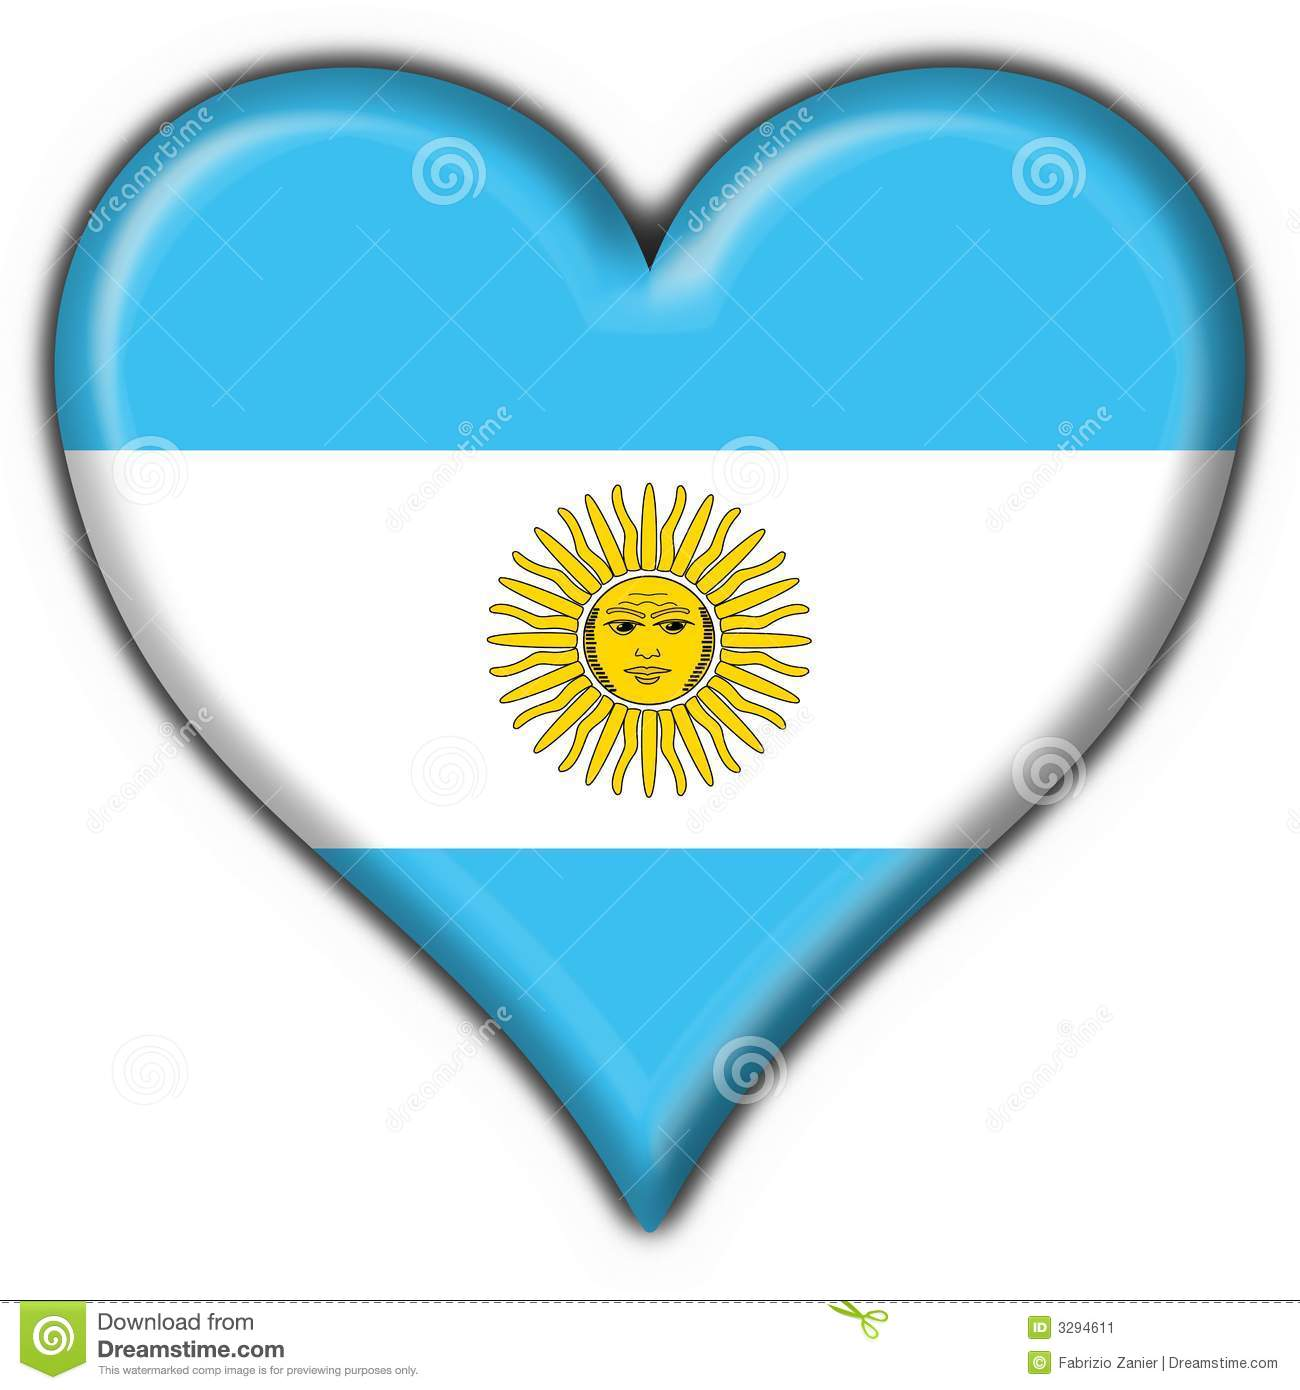 argentina and the united states a conflicted relationship images